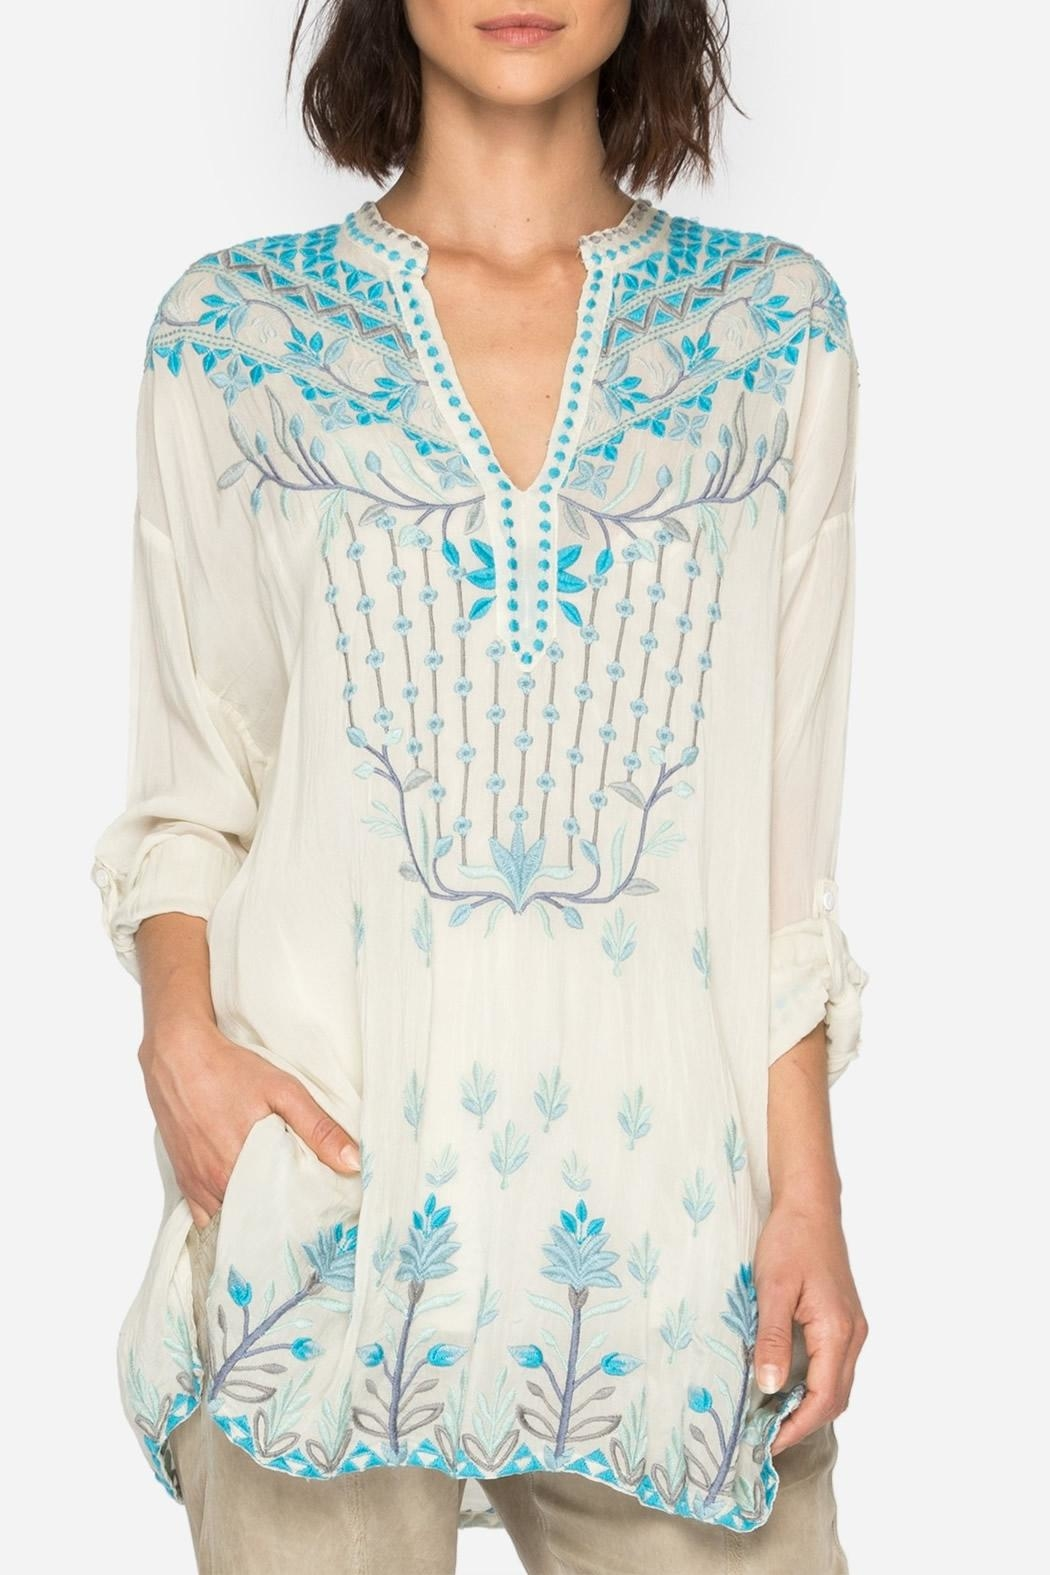 Johnny Was Spring Blouse - Main Image